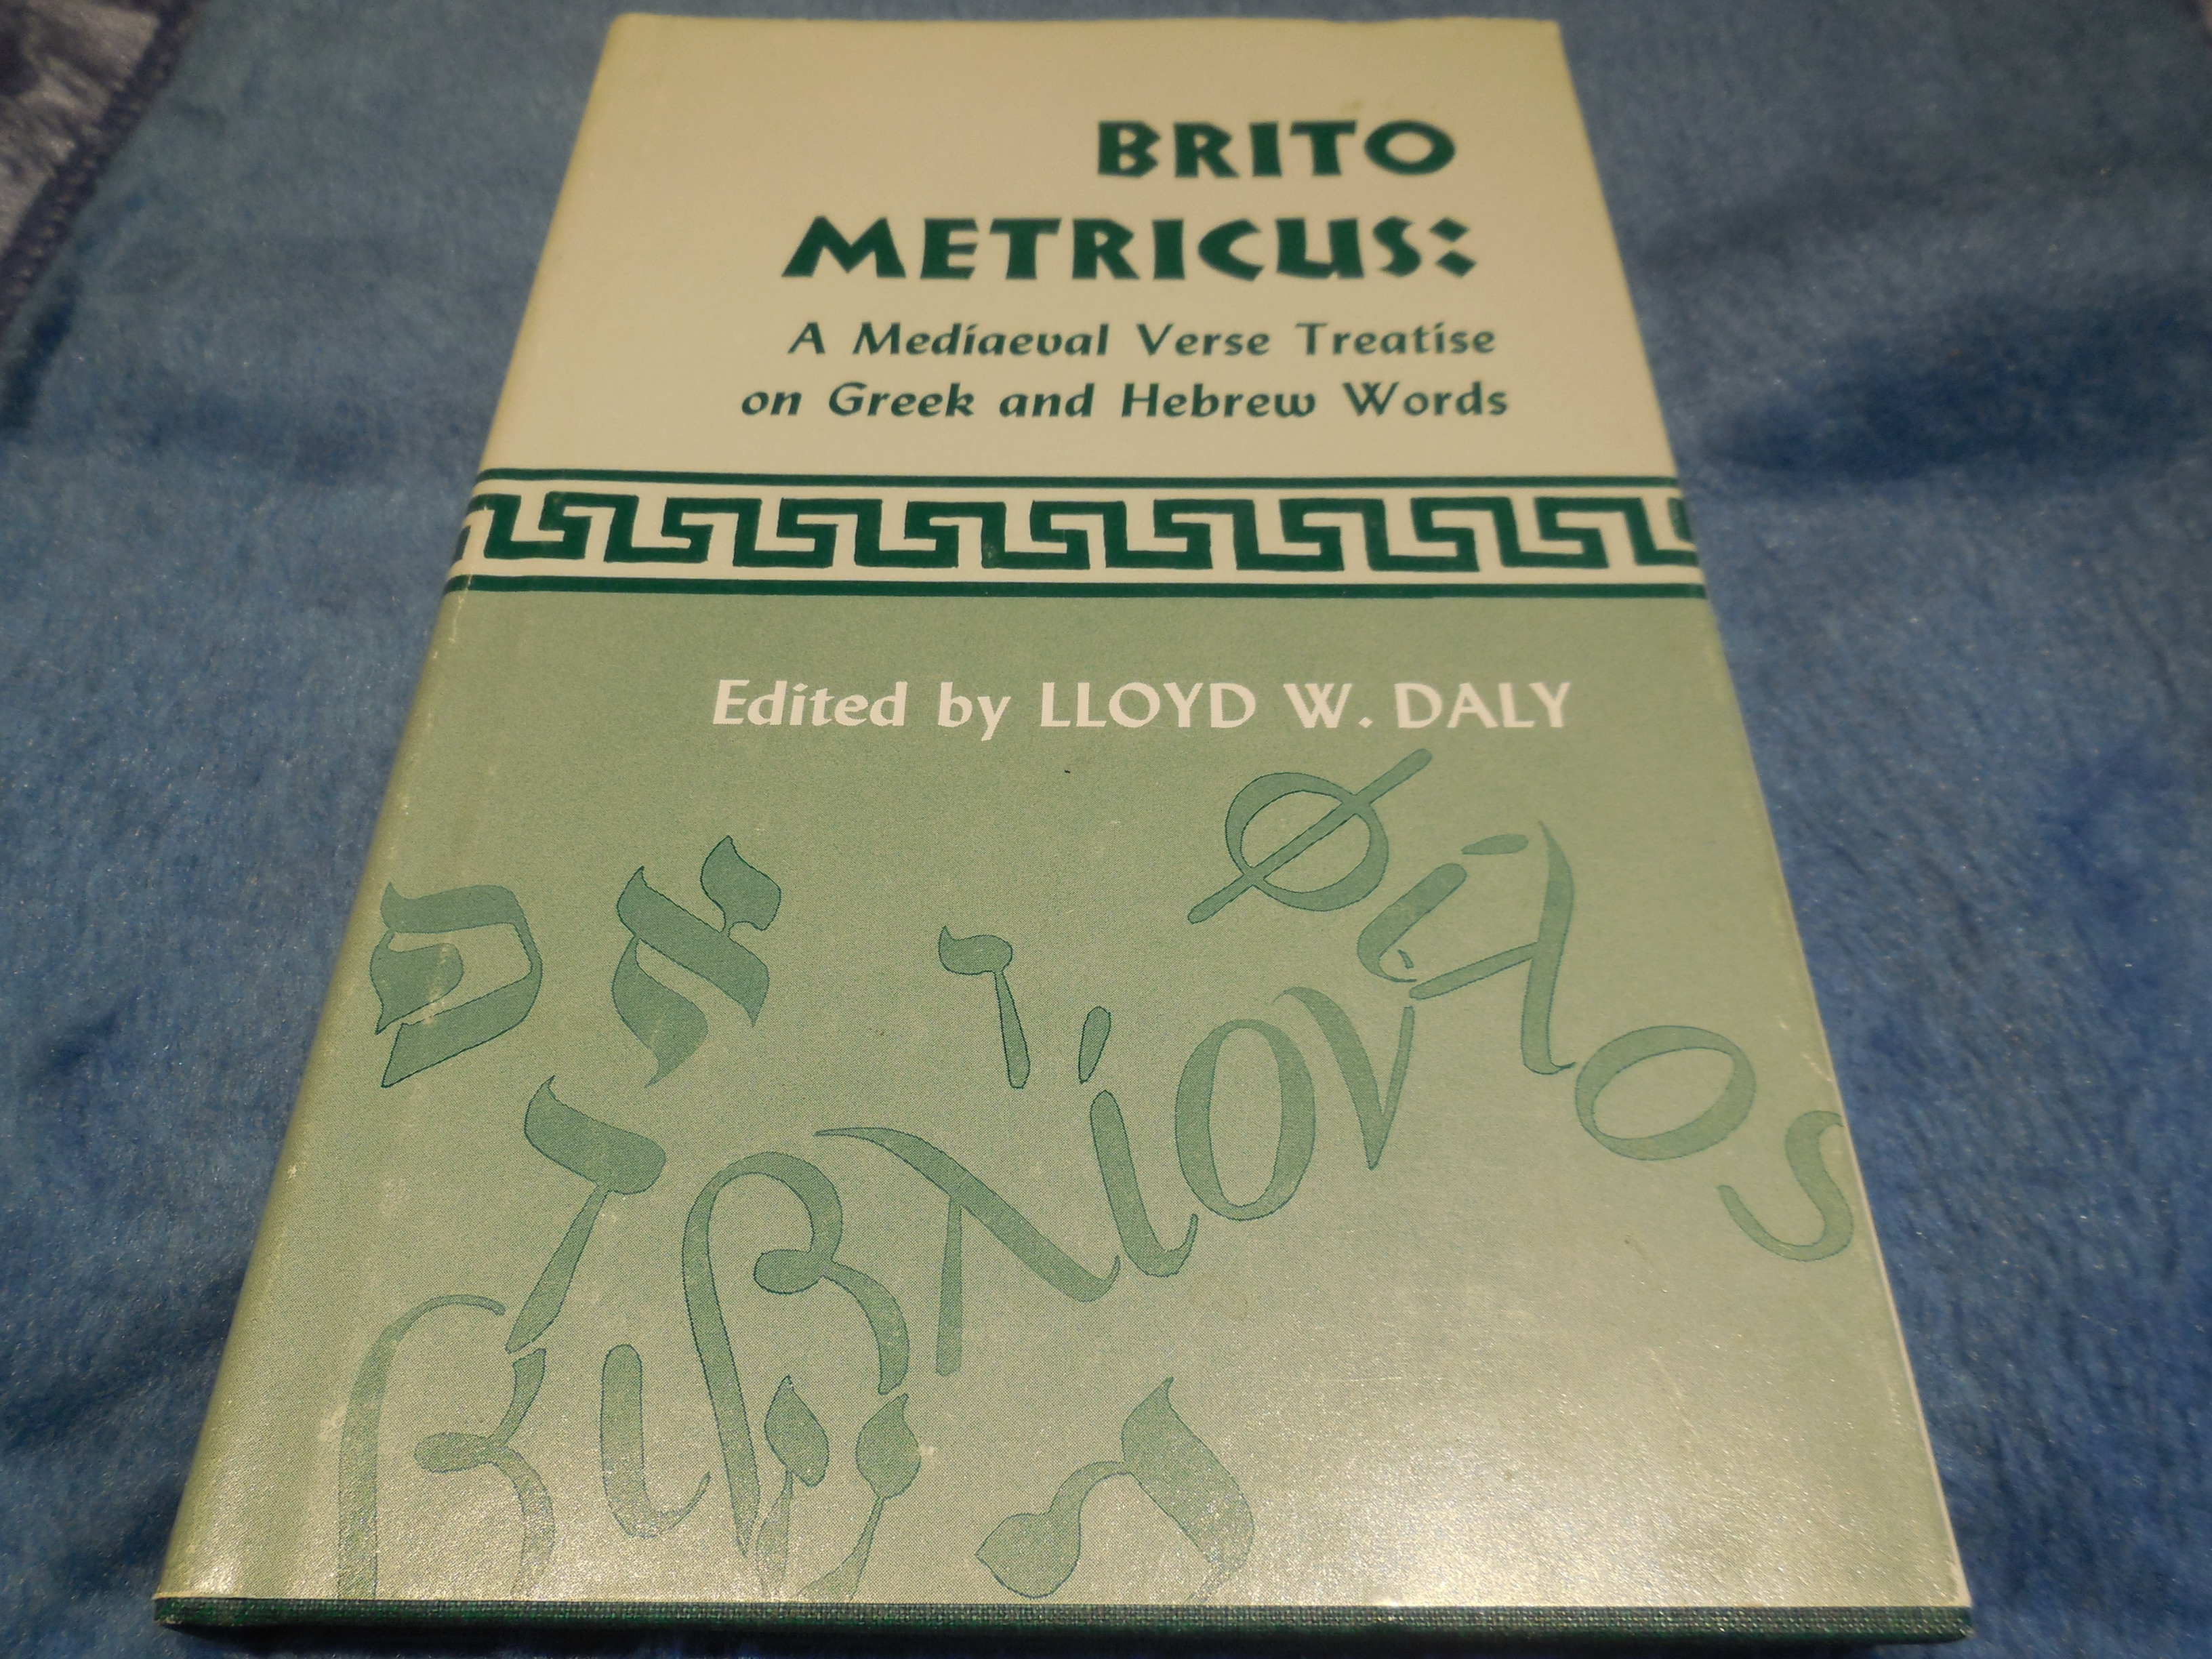 Image for Brito Metricus: A Mediaeval Verse Treatise on Greek and Hebrew Words (Metricvs)